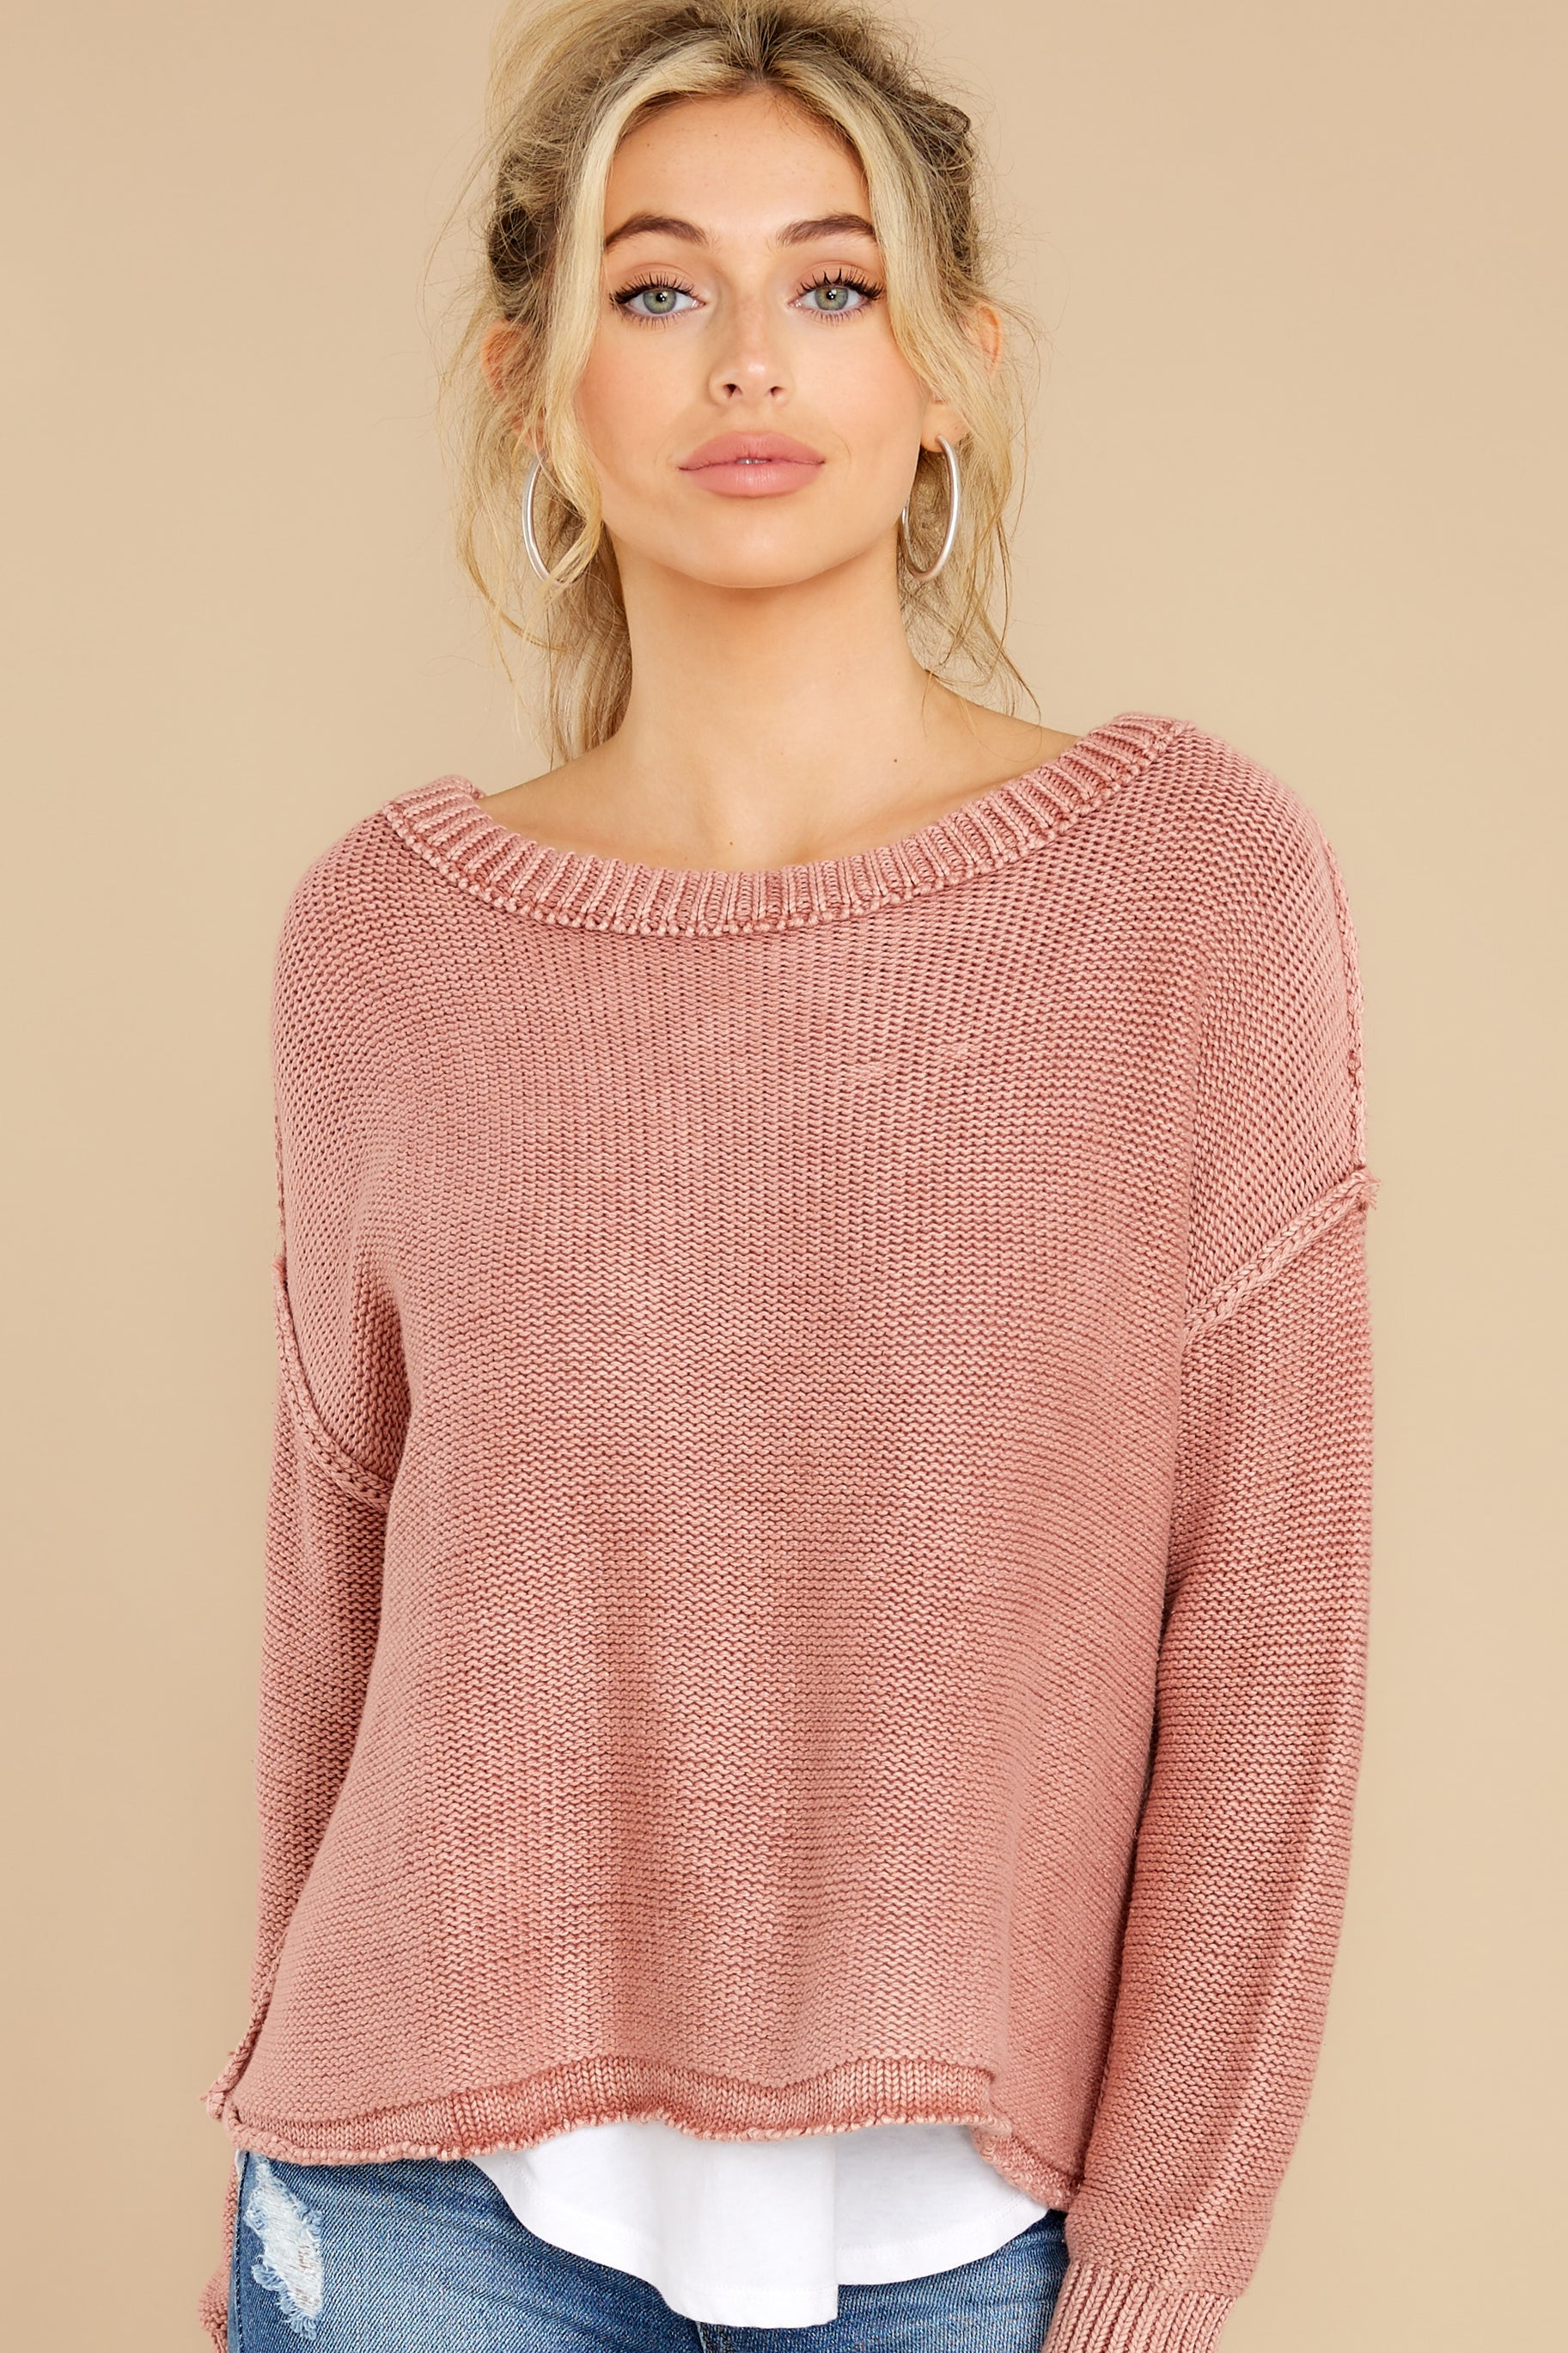 6 All Your Love Dusty Rose Sweater at reddress.com